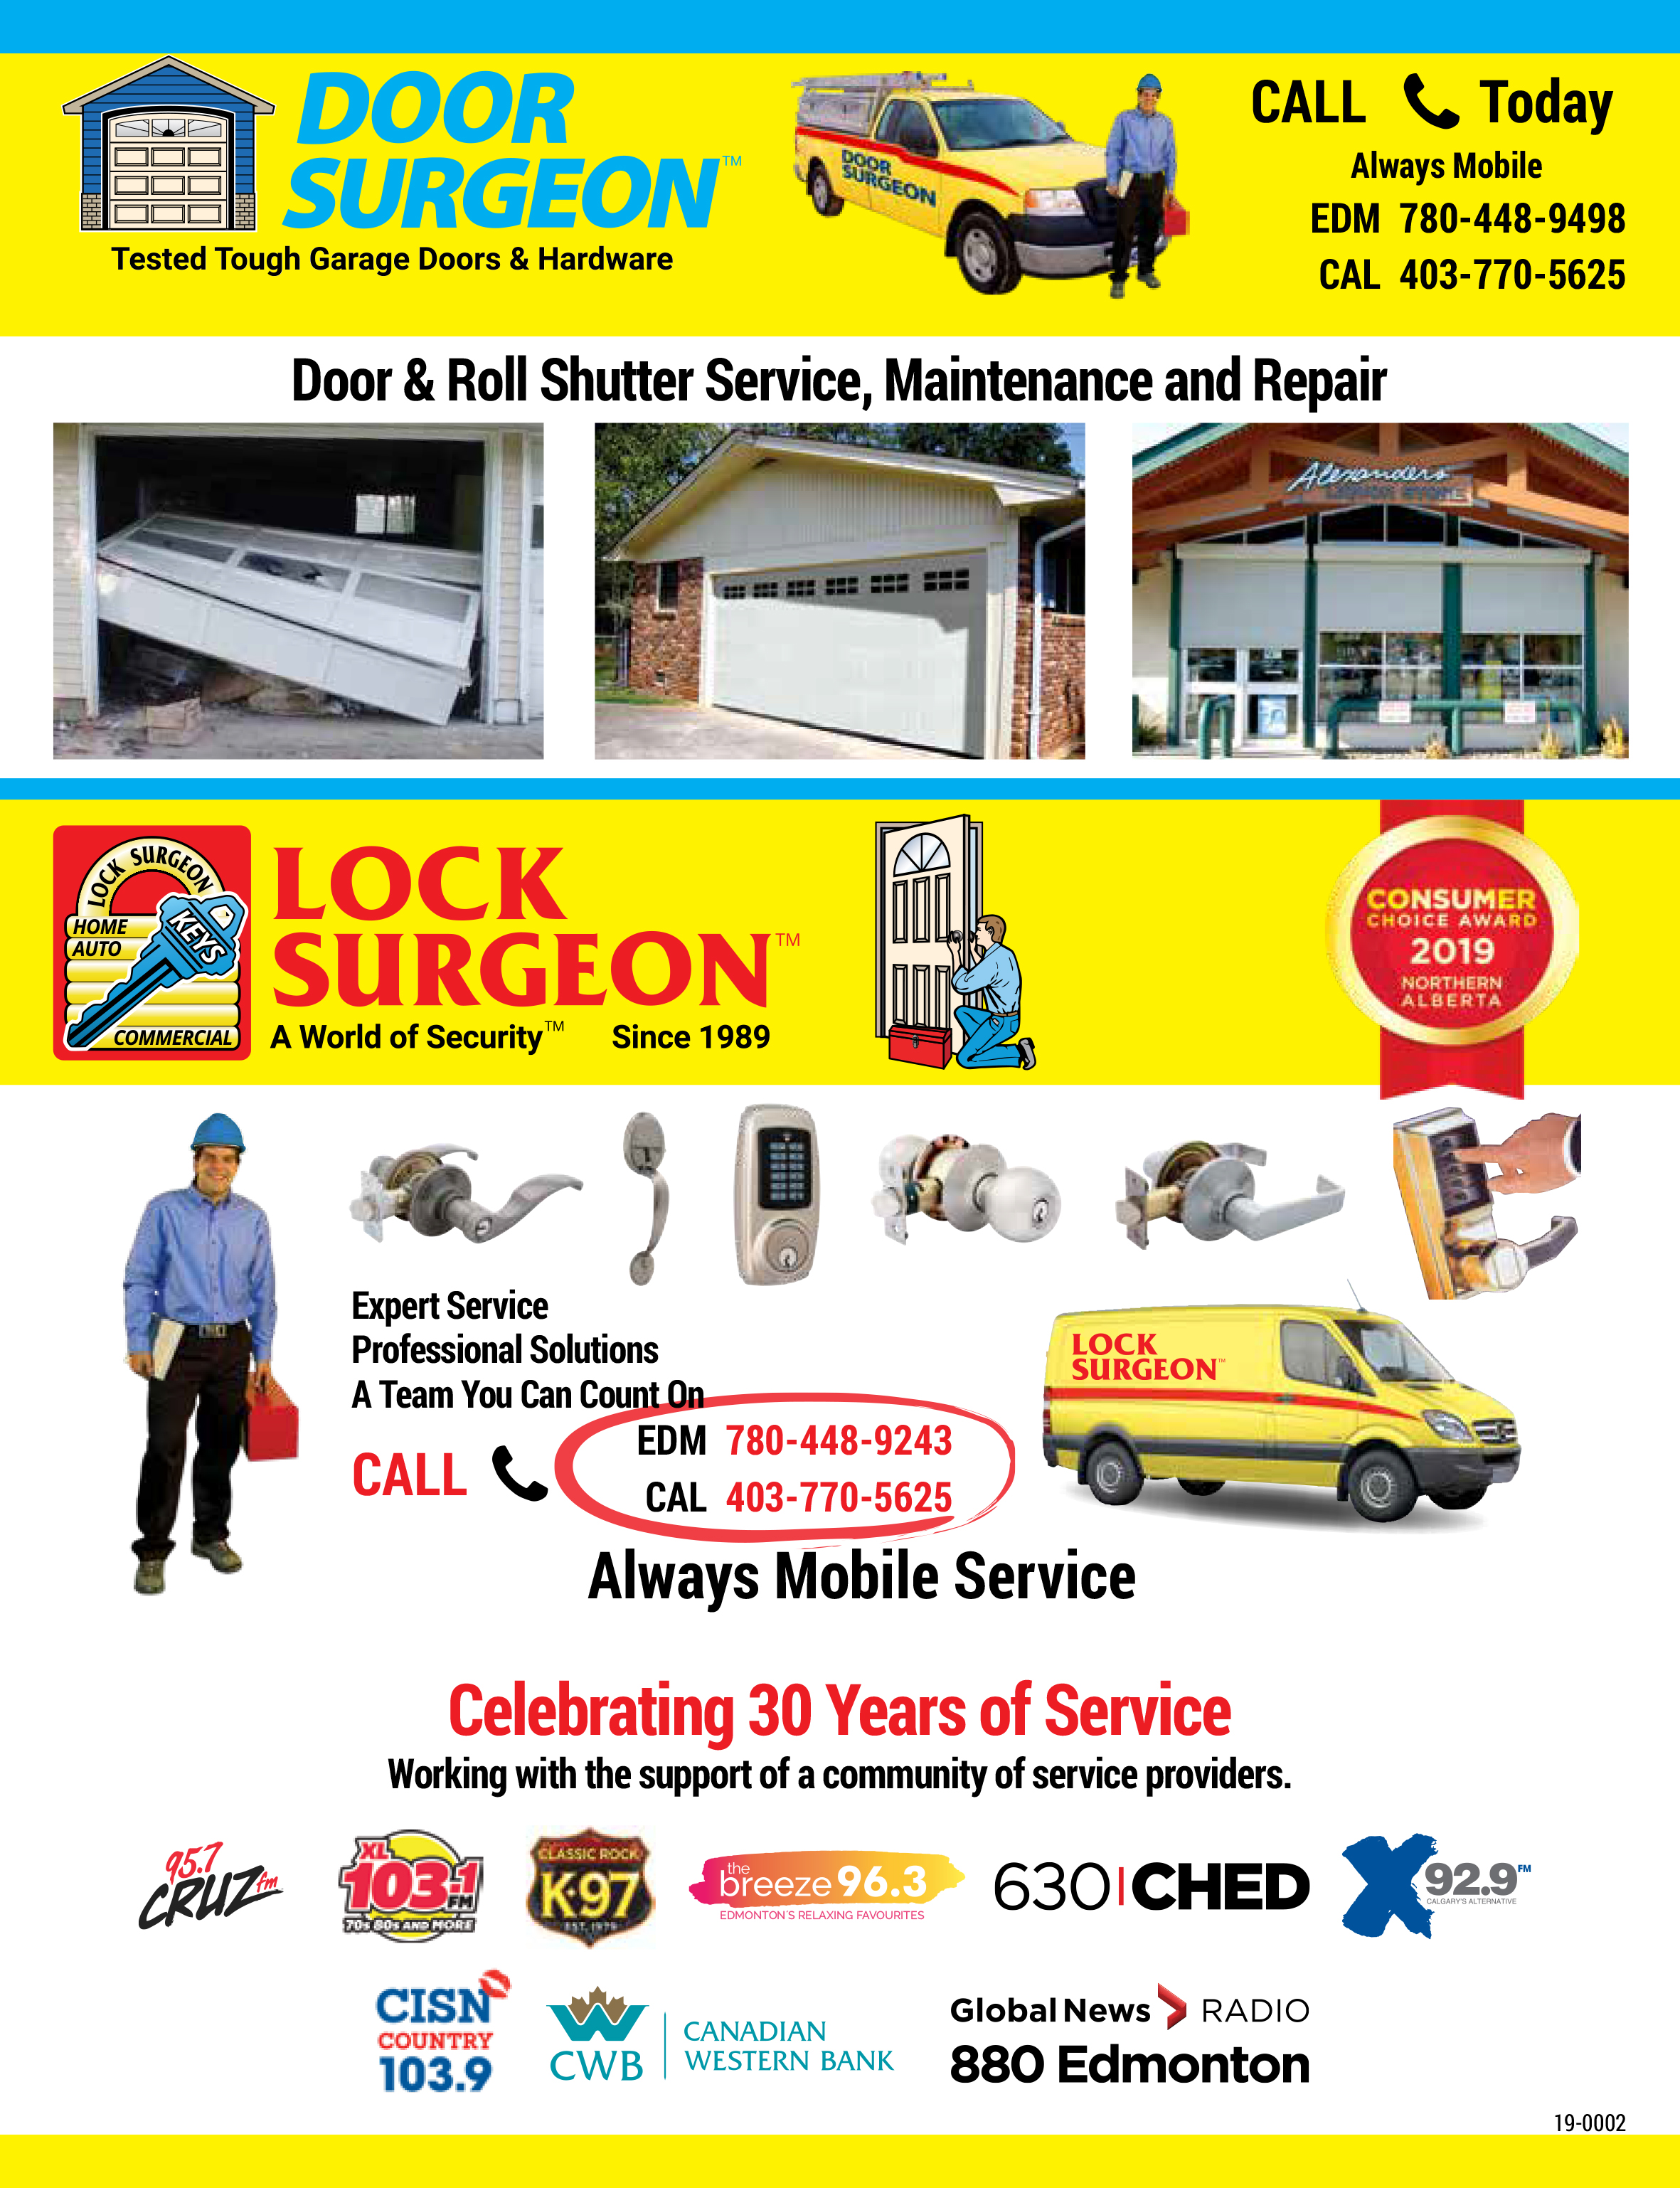 Door Surgeon professional service providers can fix, repair or replace doors of every kind. Garage doors, man doors, Handicap access doors, automatic sliding doors are all part of our service abilities.